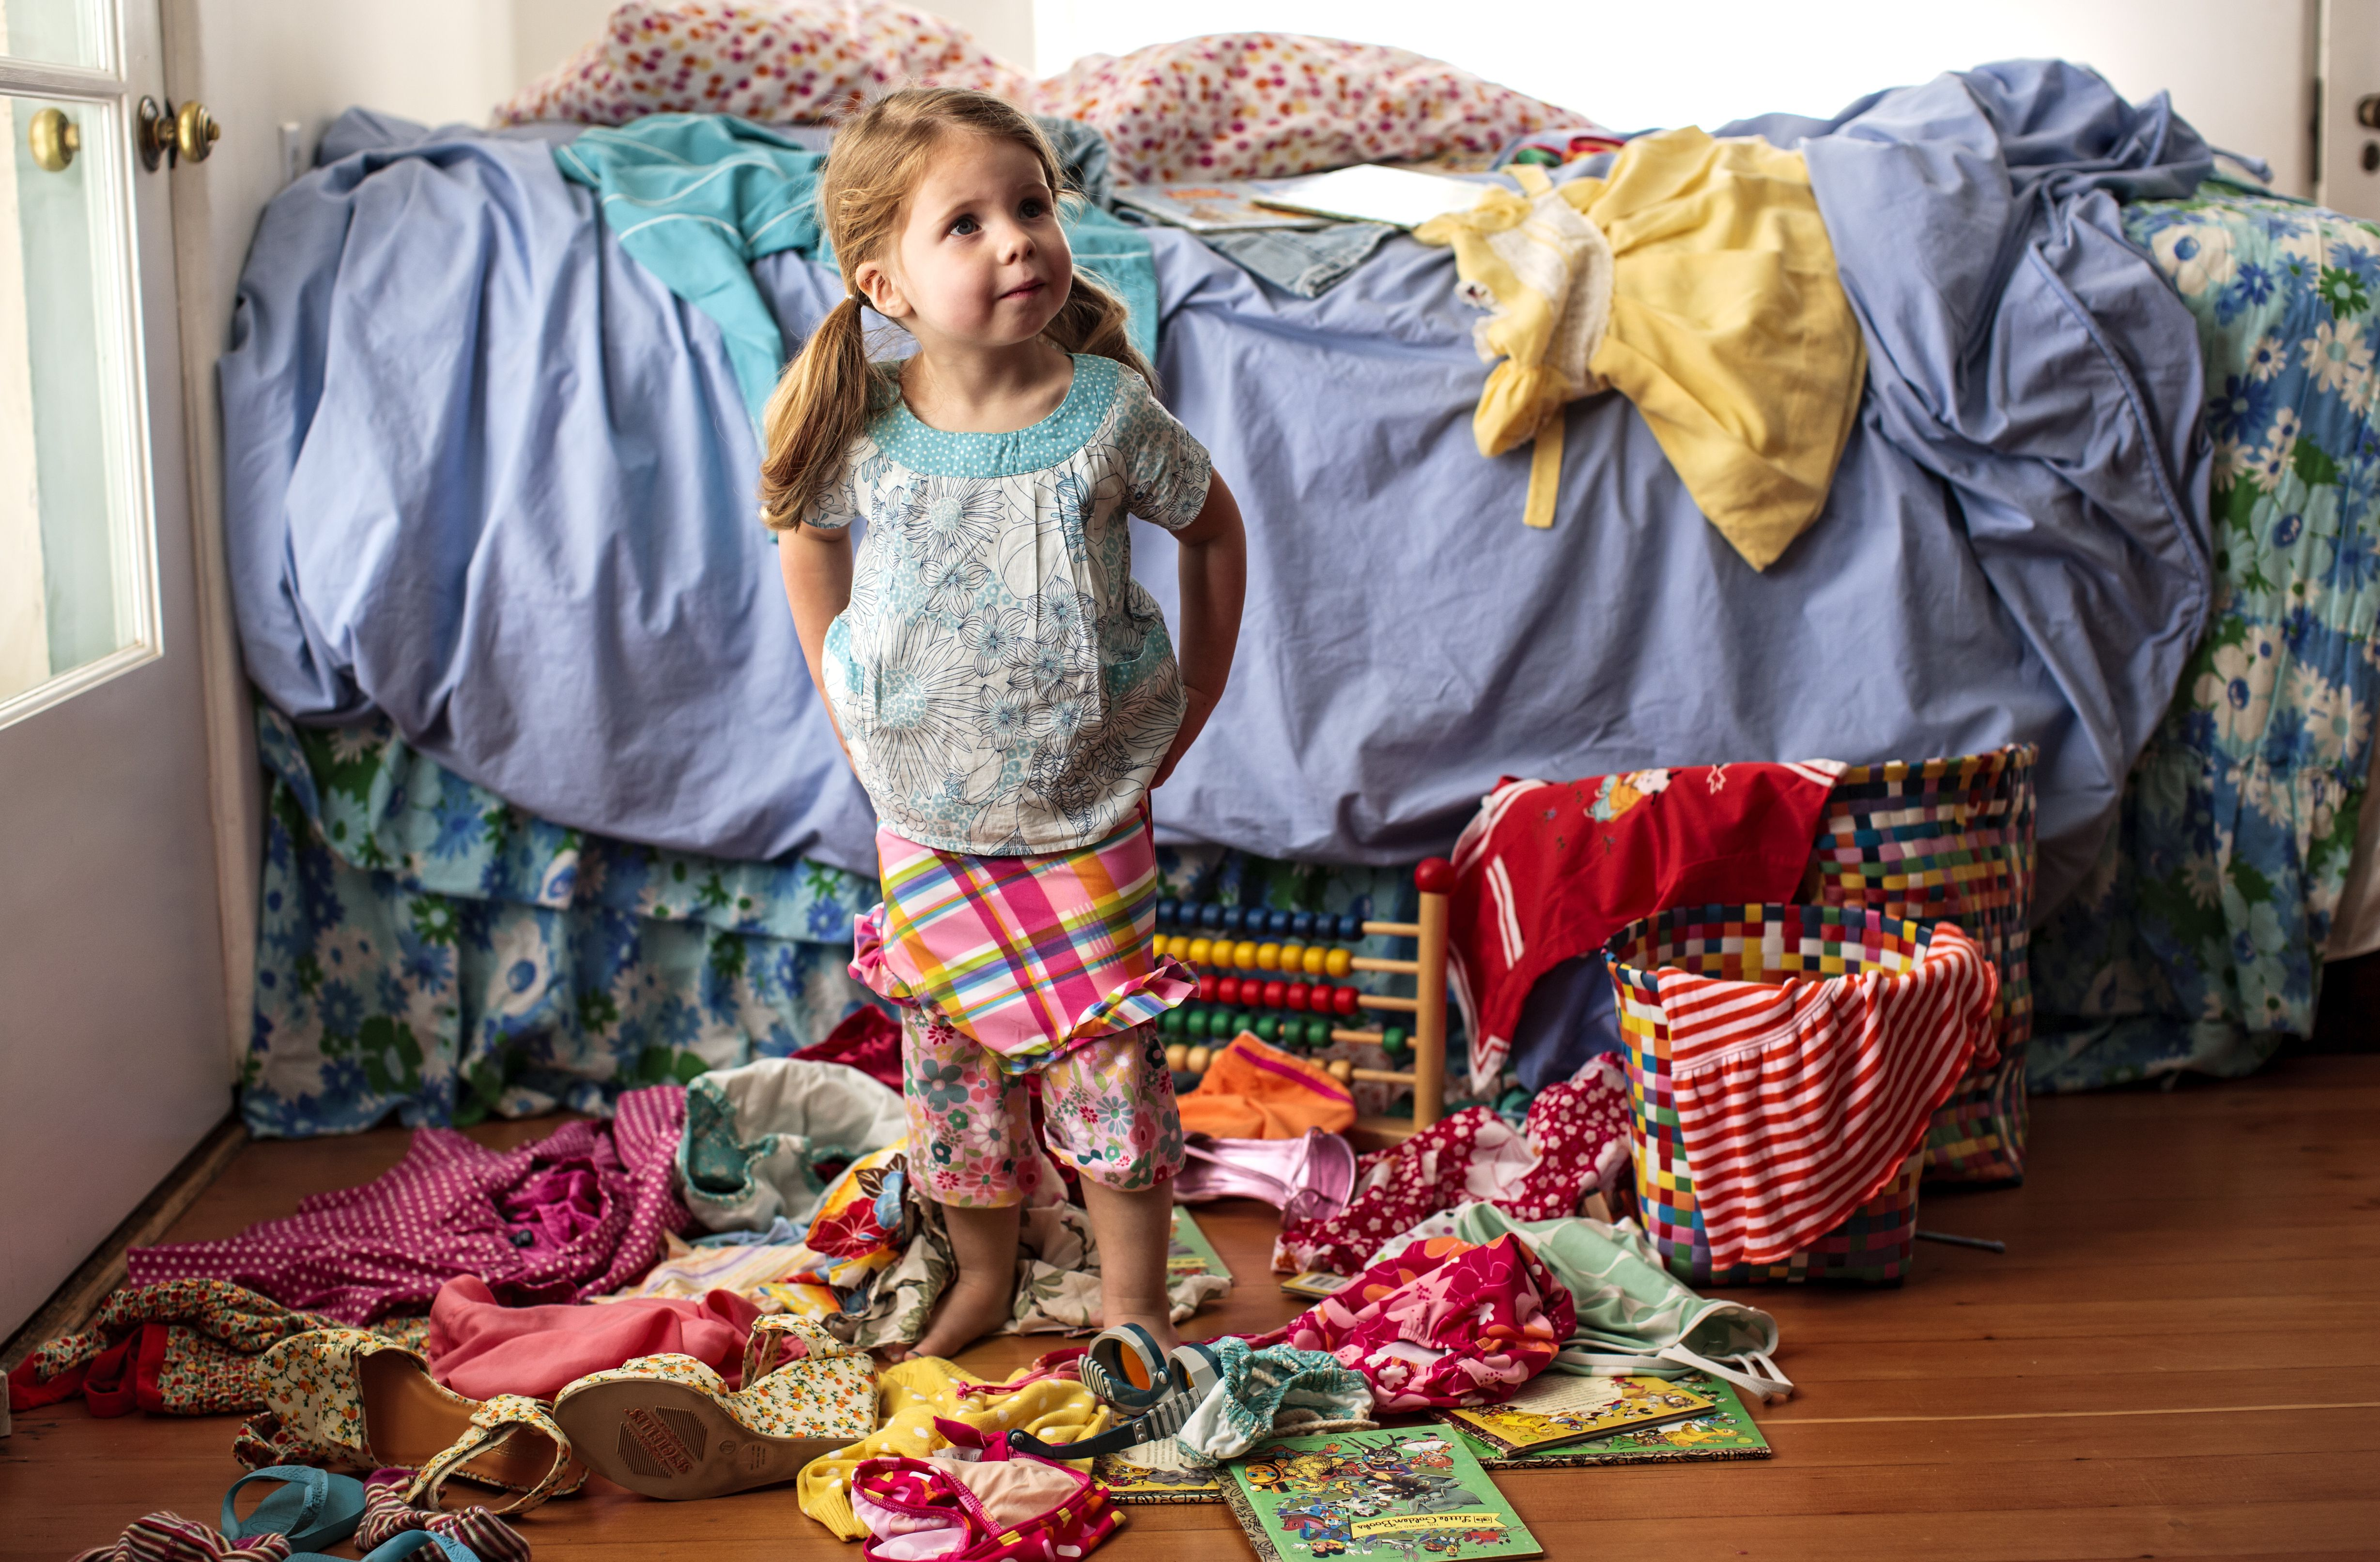 The 6 Most Common Types of Clutter